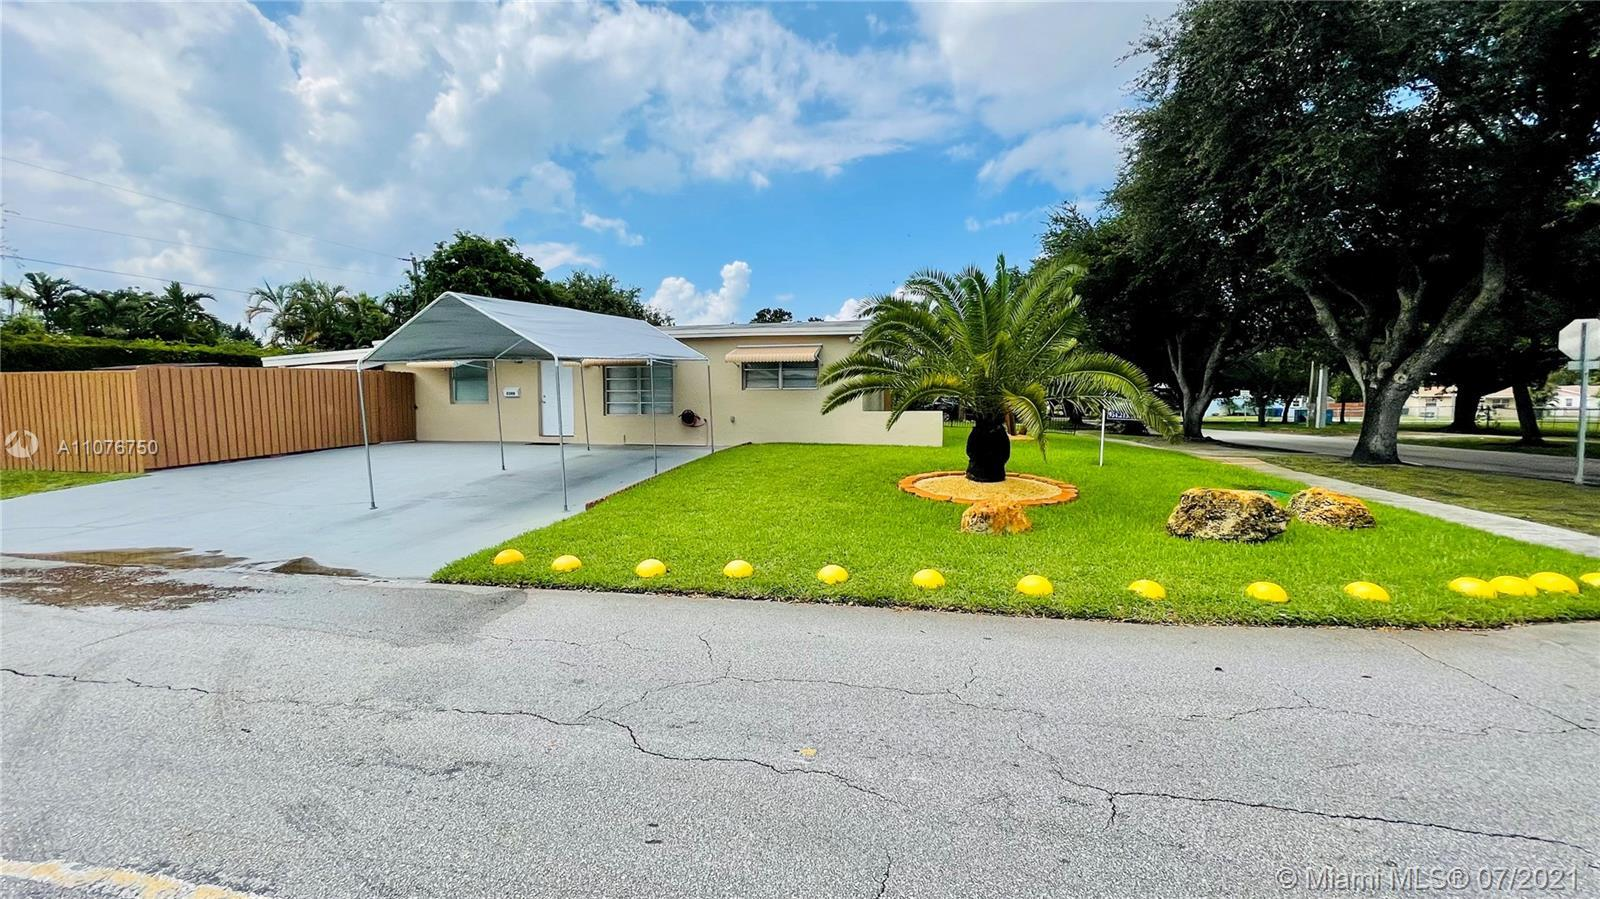 3/2 Corner Home in Immaculate Conditions, once you enter to this gorgeous home you will find the tot